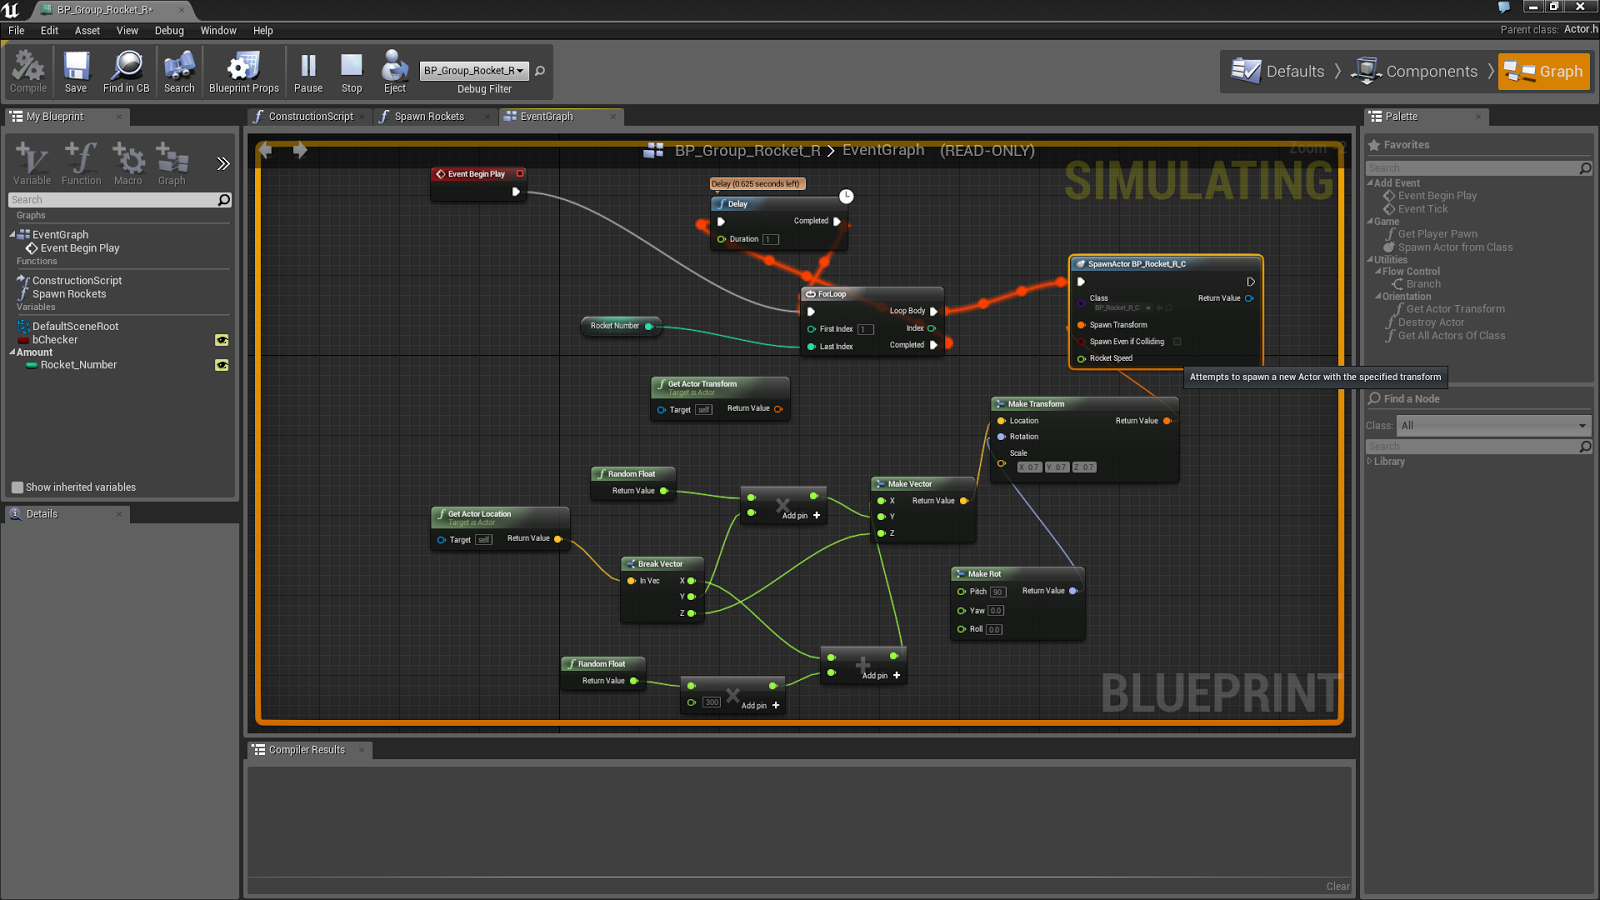 Engine research unreal engine 4 alex clark year 3 games art blueprint is a form of visual scripting that comes free with the engine designed to be much easier to learn than standard code language but just as malvernweather Choice Image